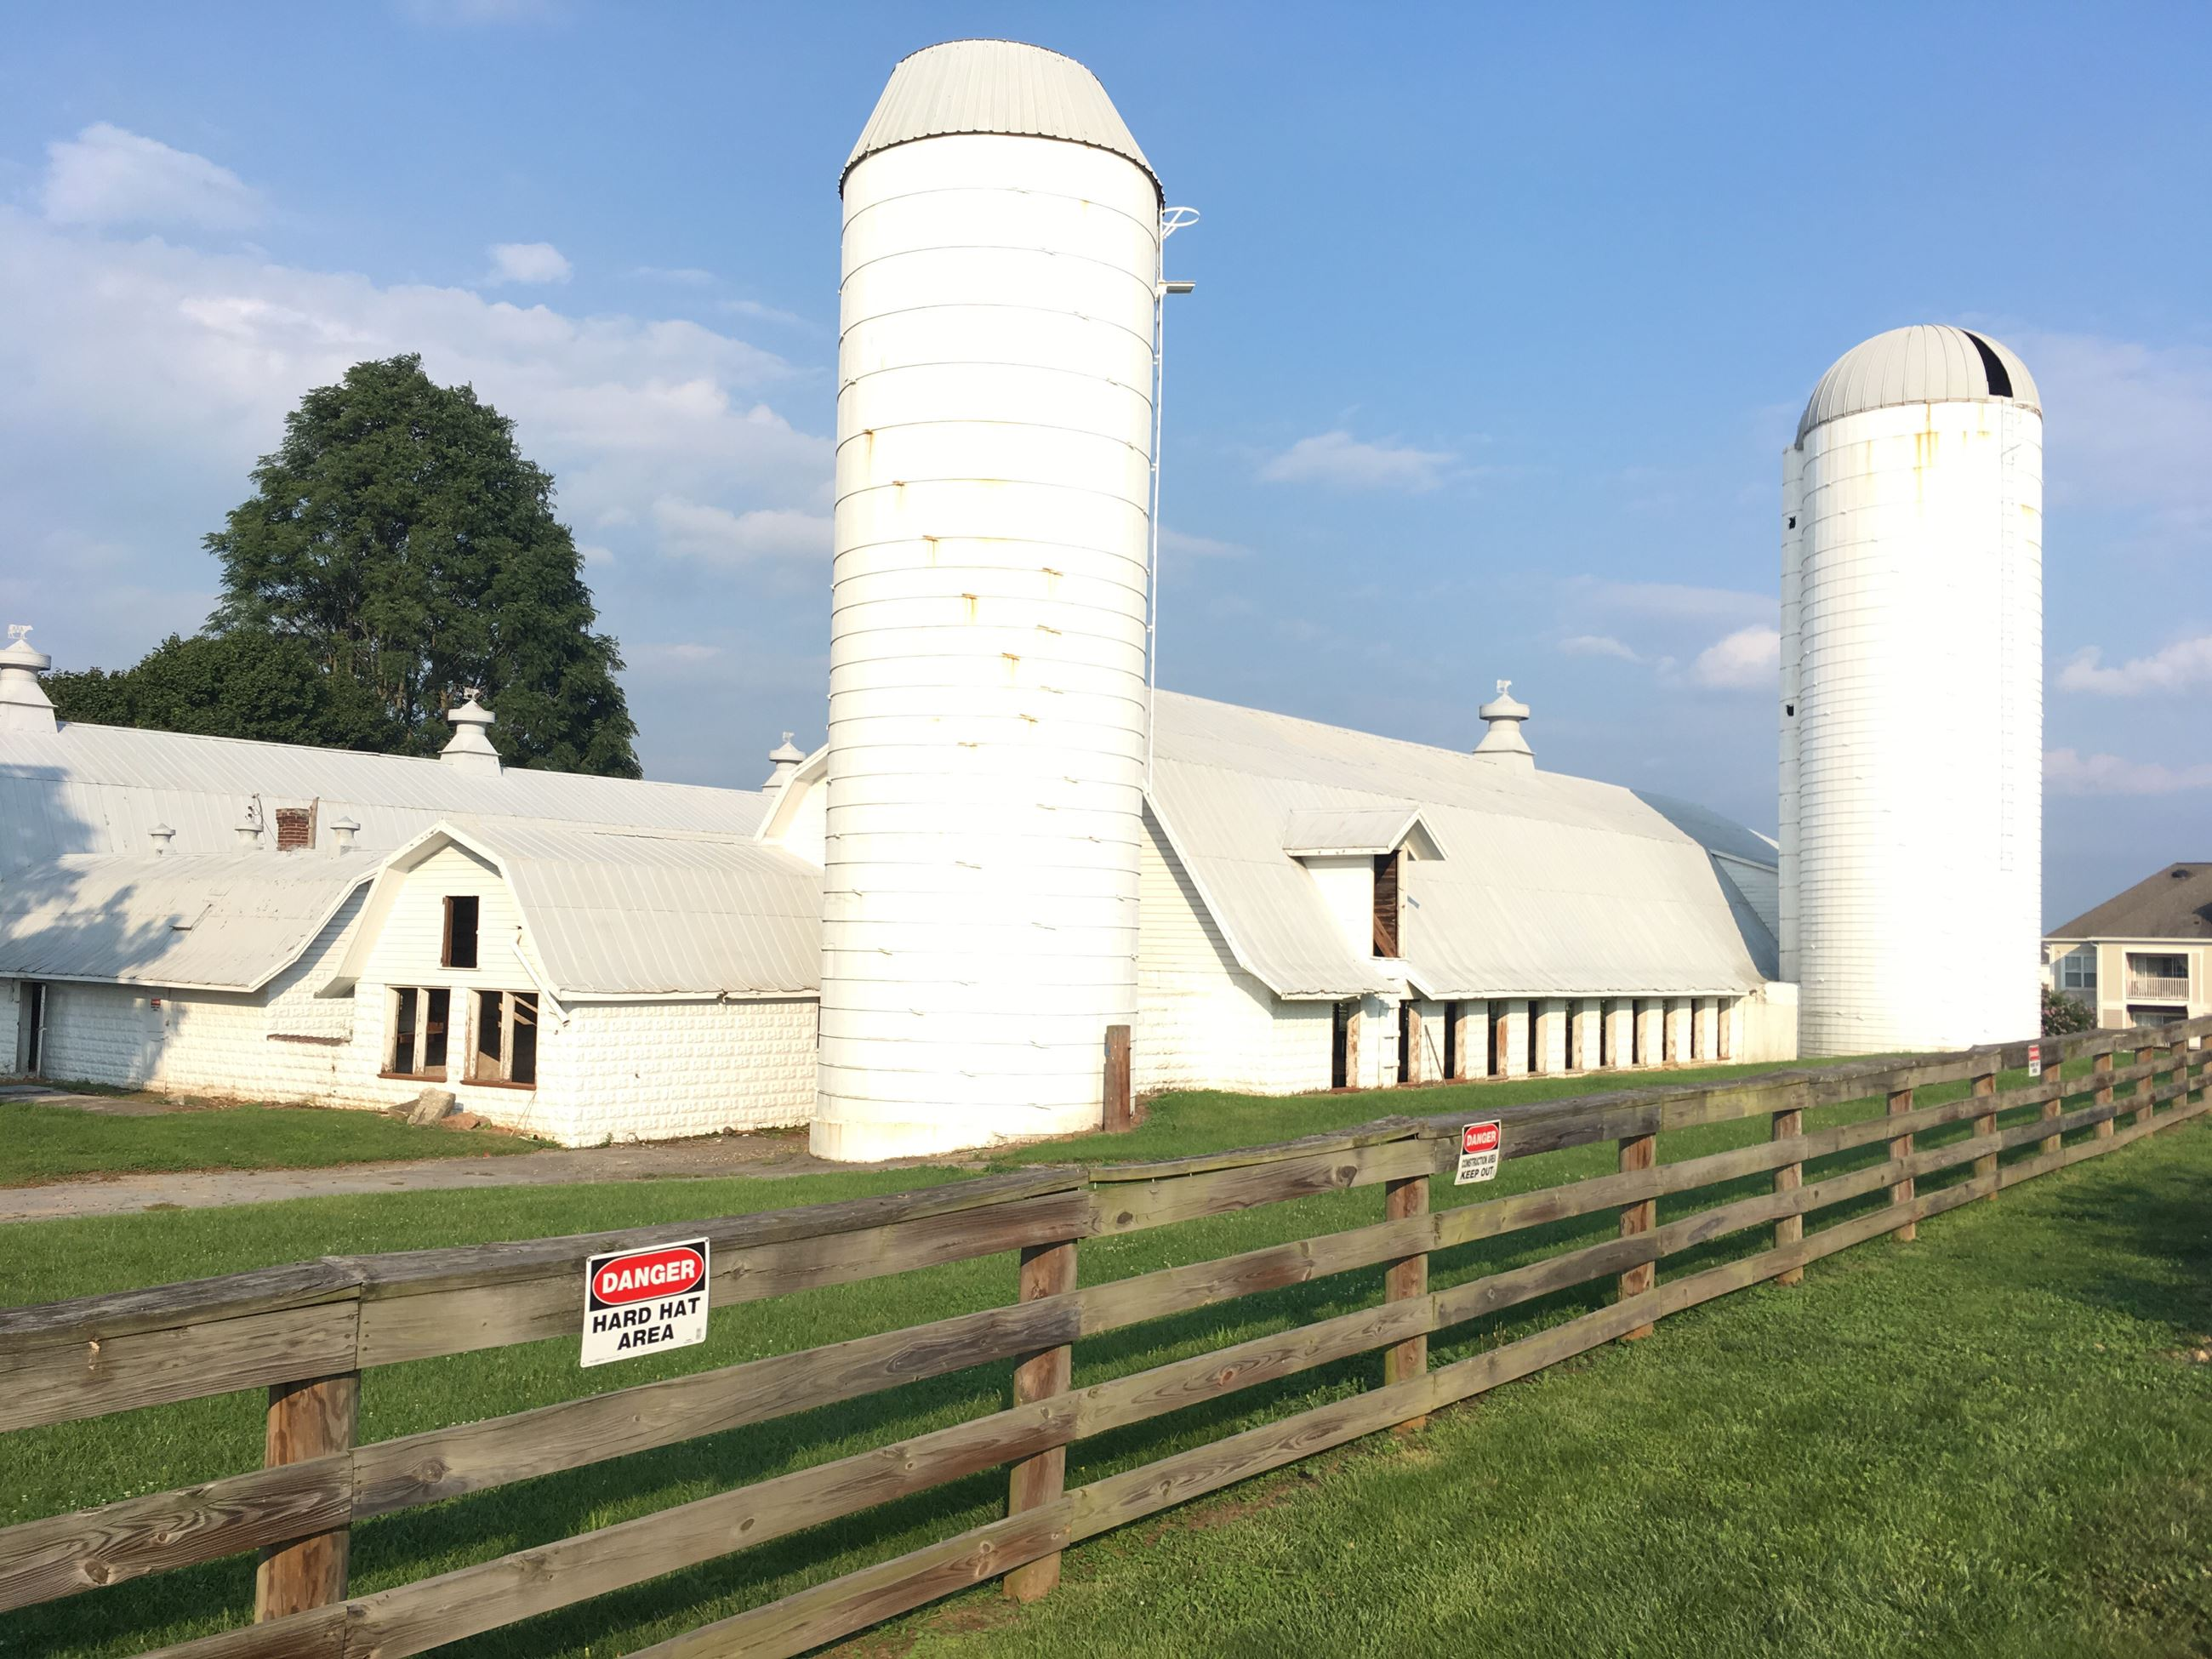 King Farm Farmstead